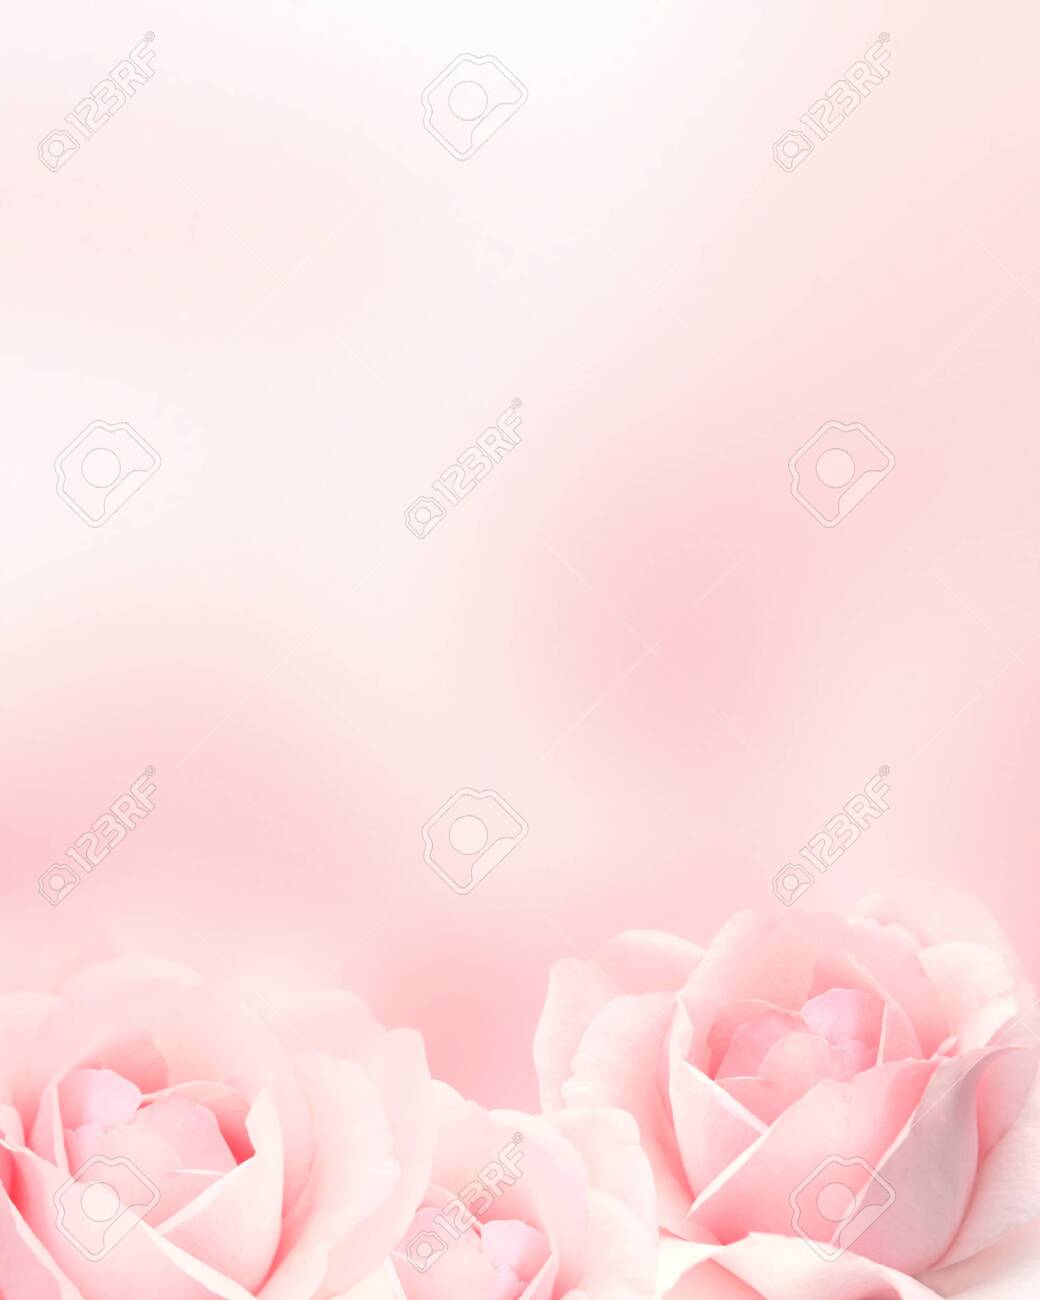 Blurred vertical background with three roses of pink color. Copy space for your text. Mock up template. Can be used for wallpaper, wedding card, web page banner - 143415888